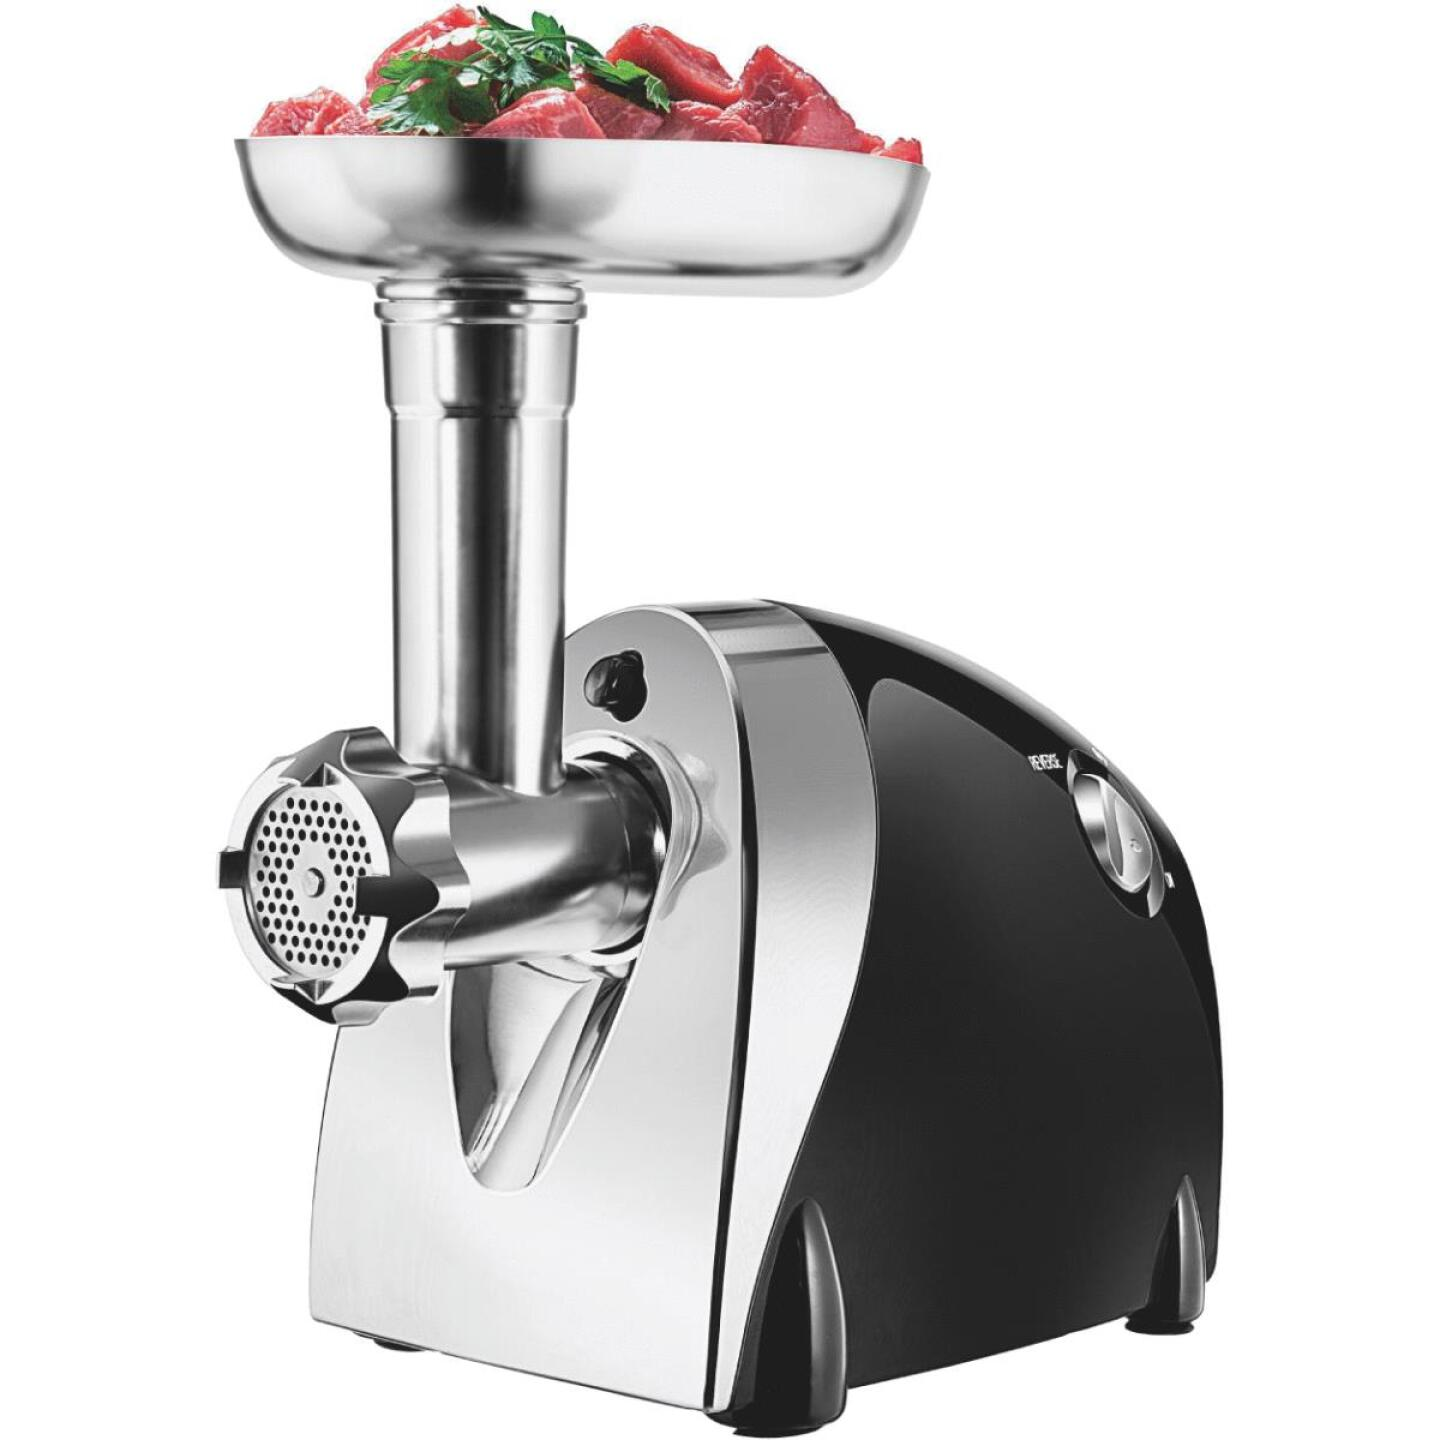 Chefman Choice Cut Black Electric Meat Grinder Image 1